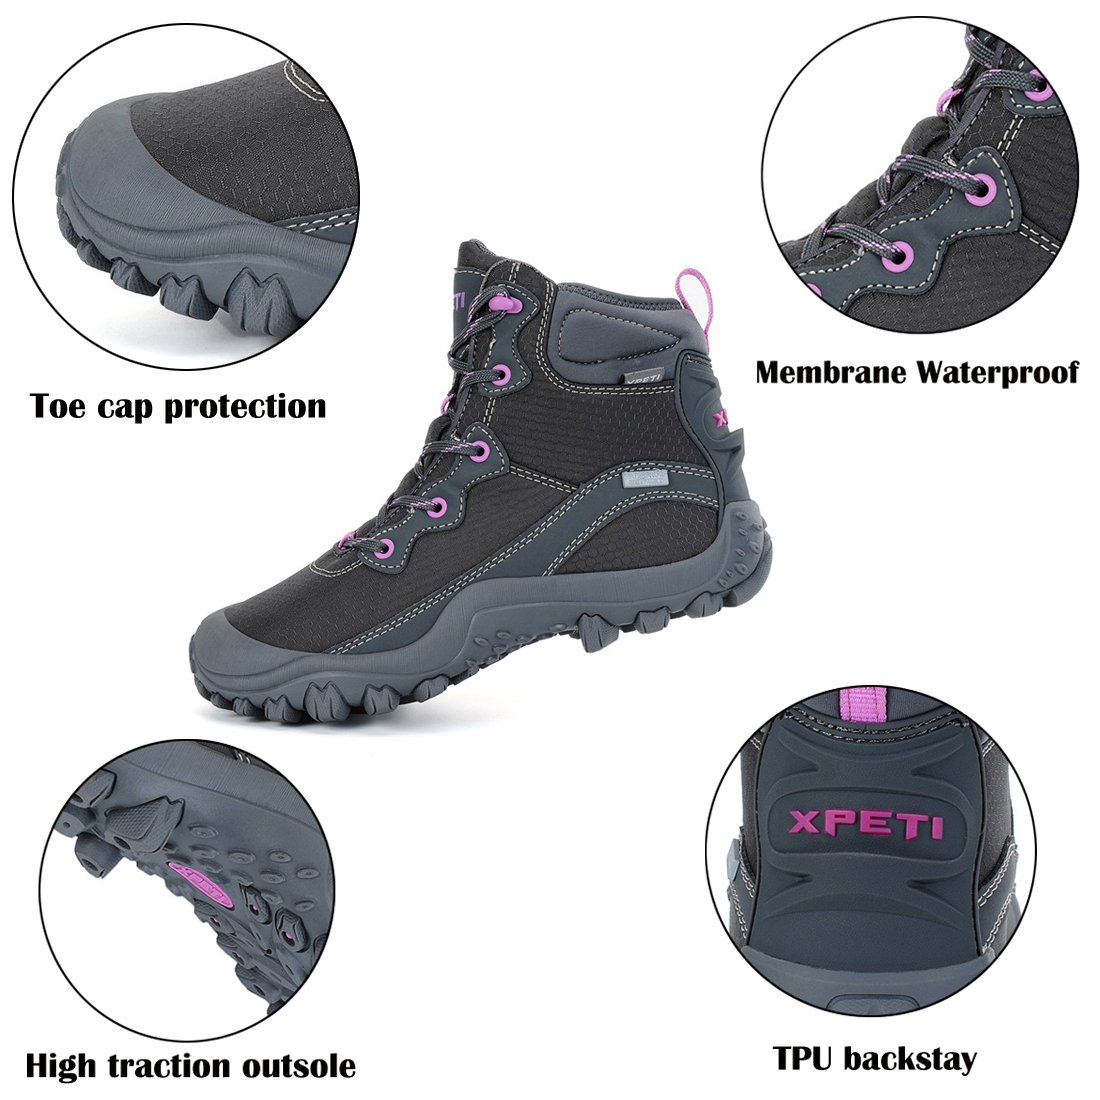 XPETI Women's Mid Waterproof Hiking Outdoor Boot (6 B(M) US, Gray) by XPETI (Image #6)